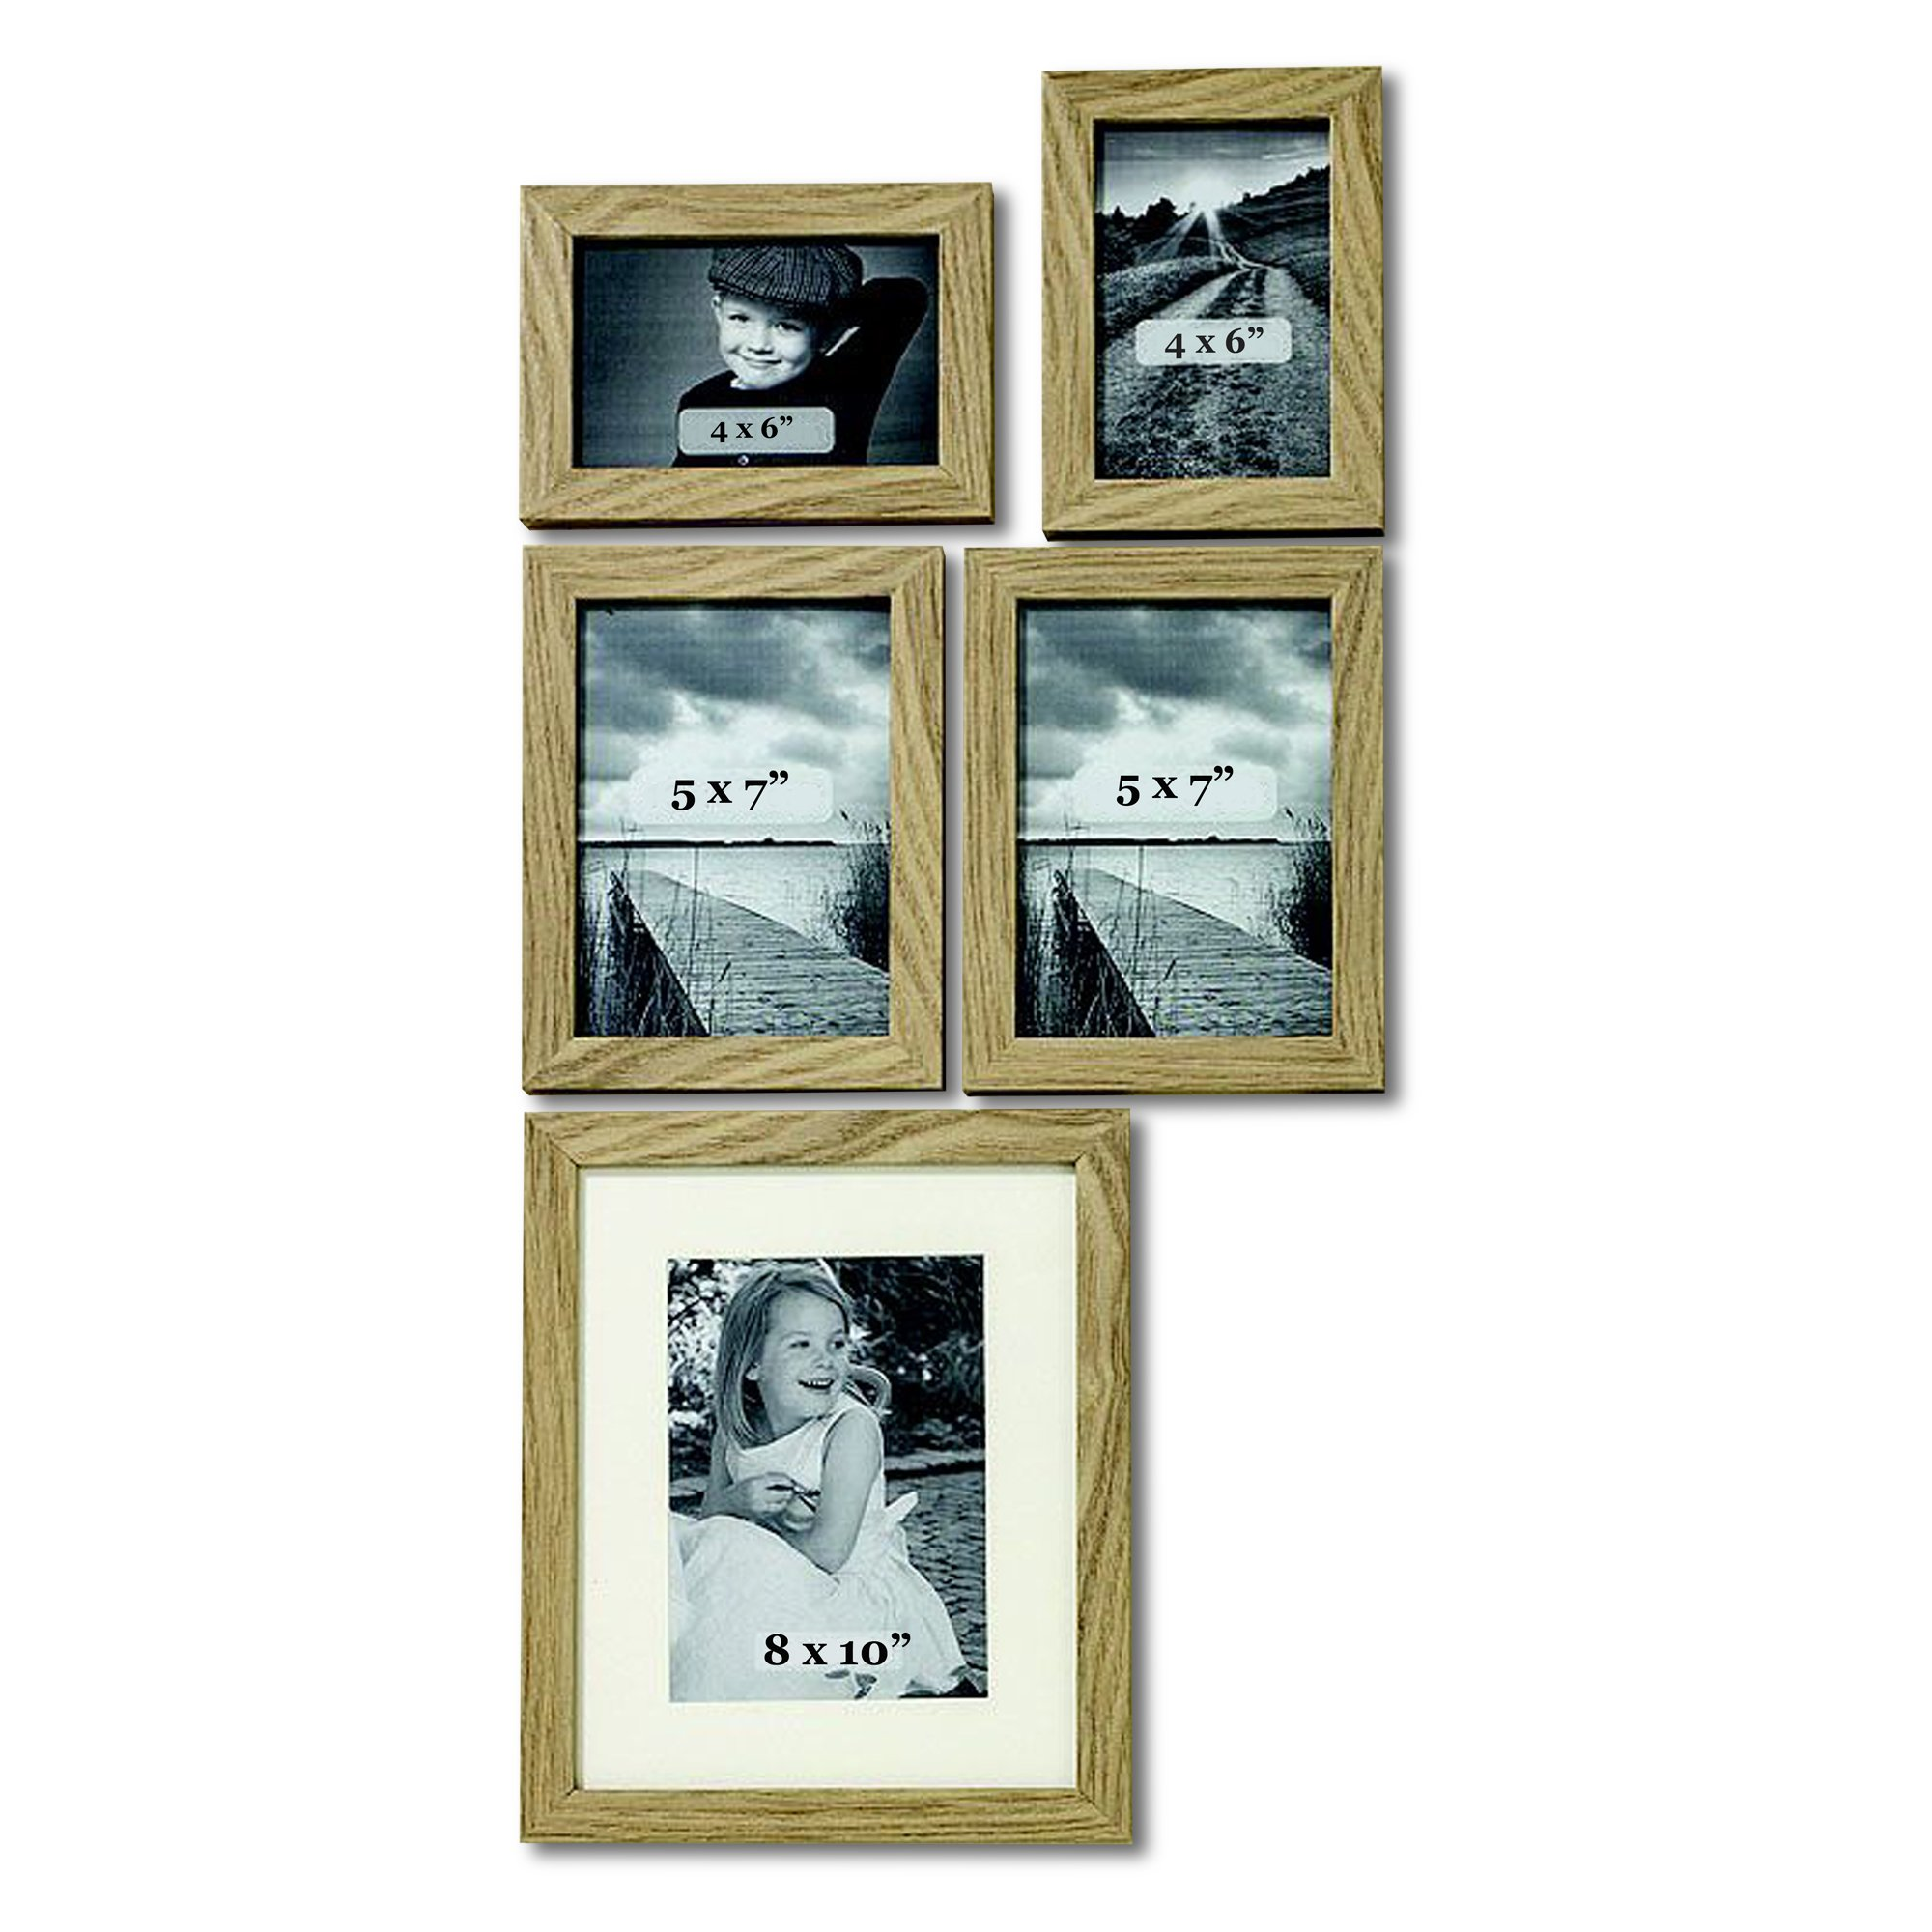 WHW Whole House Worlds Tribeca Gallery Frames, Set of 5, Assorted Sizes: 2/4 x 6, 2/5 x 7, and 1/8 x 10 Inches, Natural Wood, Clear Stain, Glass Insert, Boxed Set by WHW Whole House Worlds